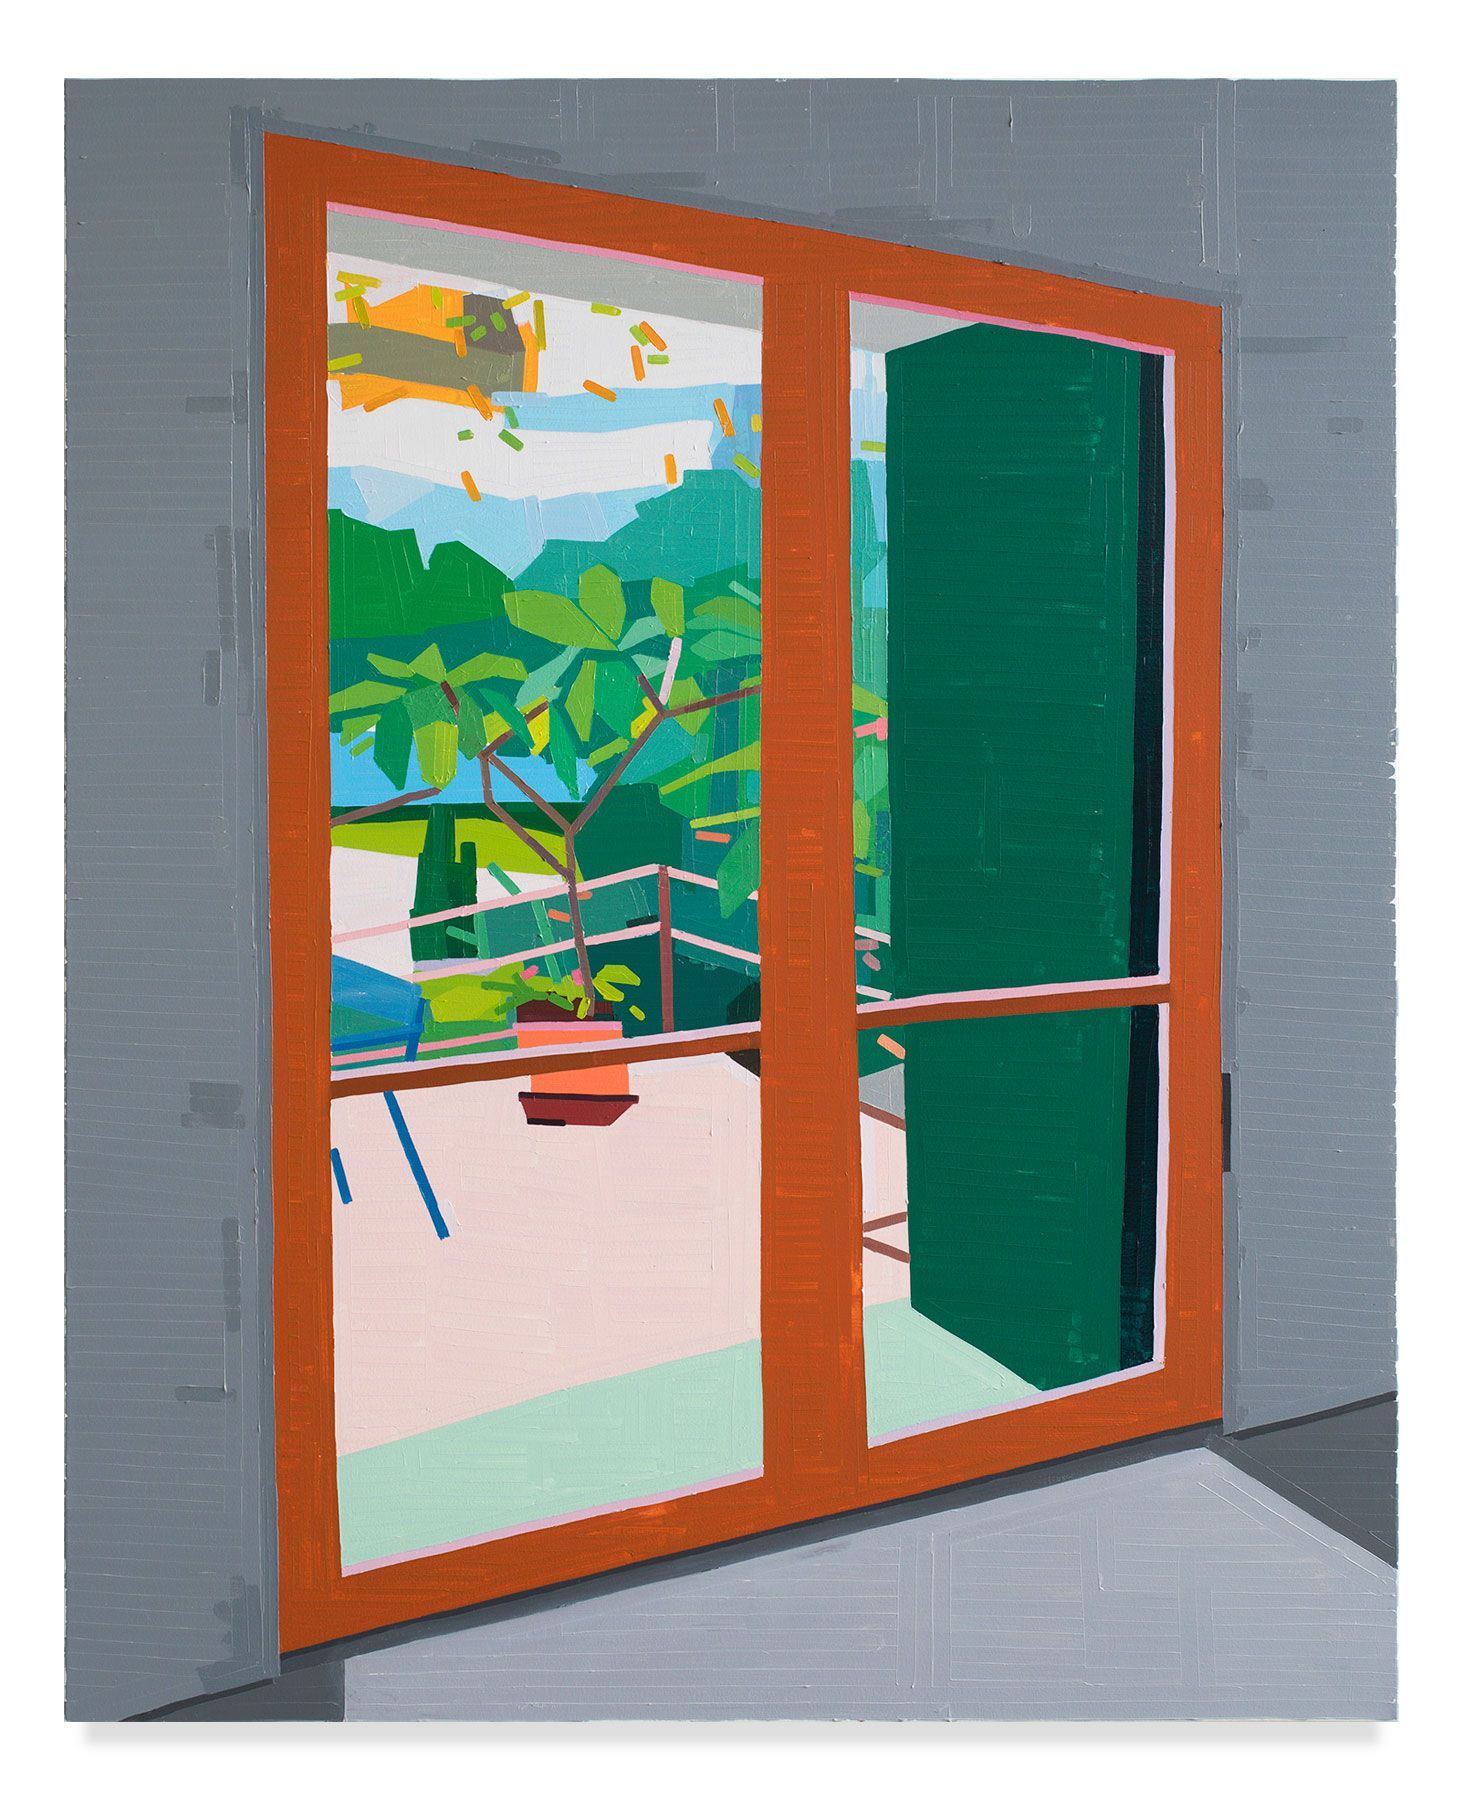 Plant Outside, 2019, Oil on canvas, 61 7/8 x 50 inches, 157 x 127 cm,MMG#31726